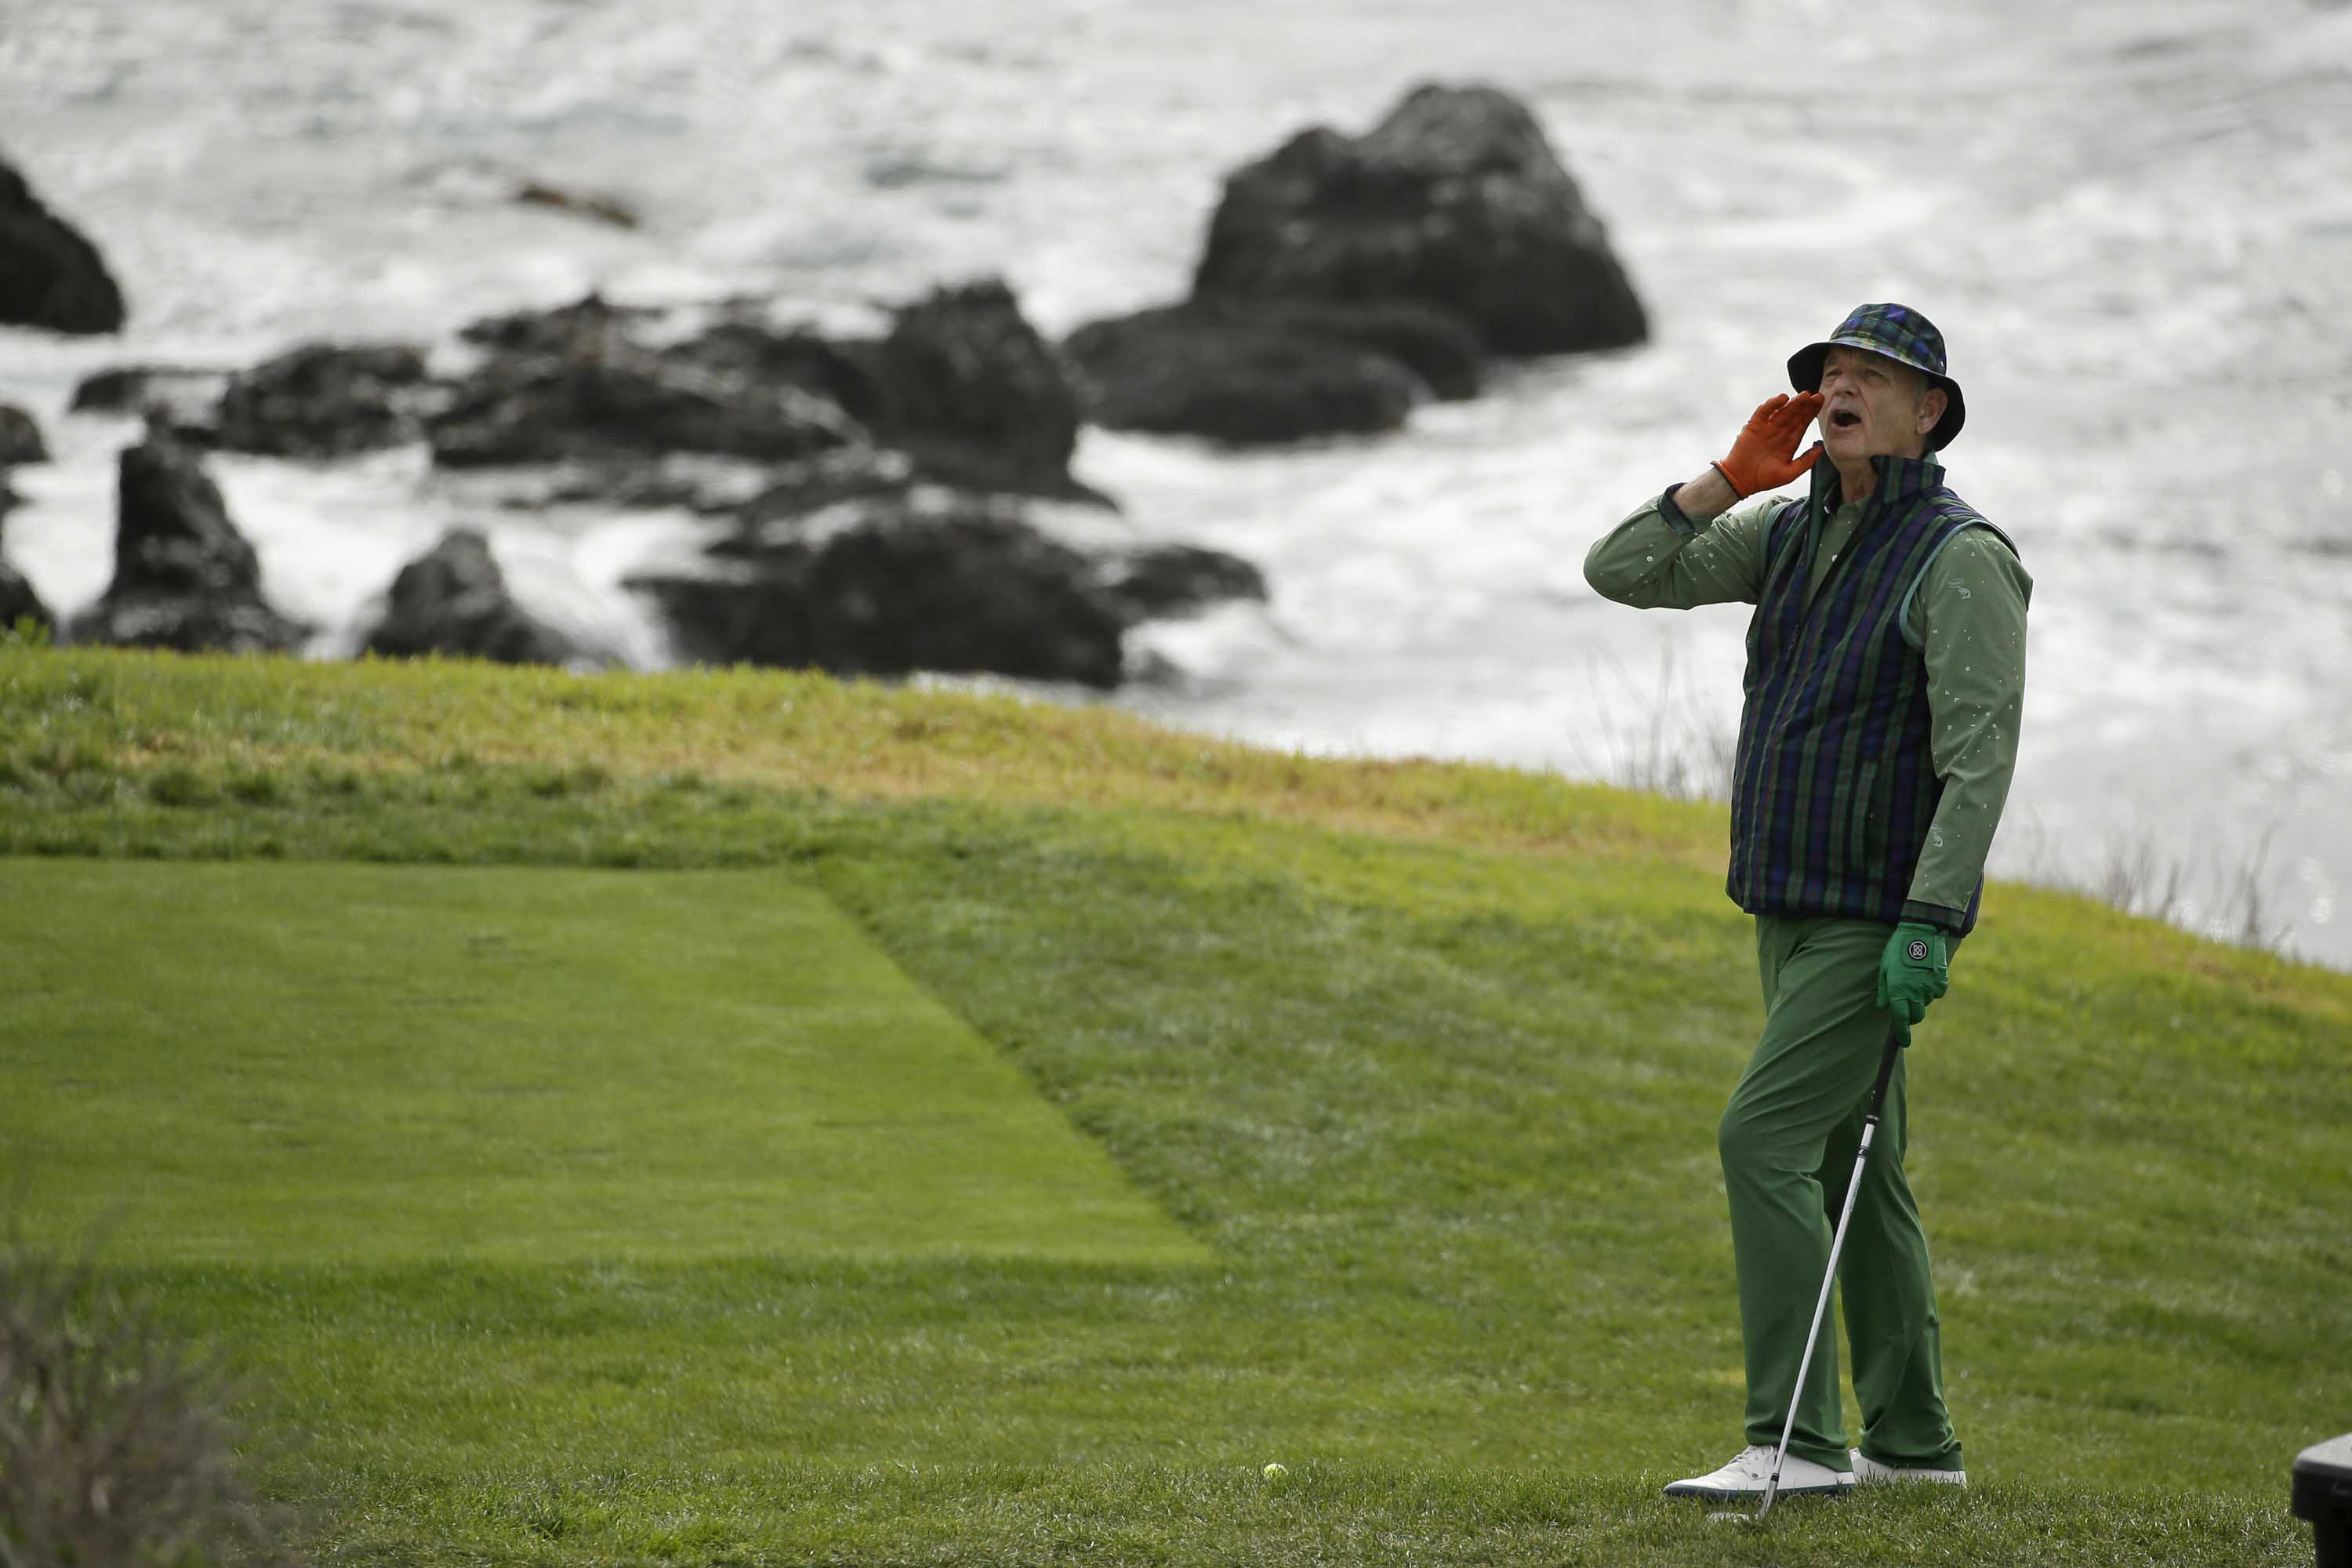 Bill Murray Channels Caddyshack Character During Golf Tournament Fox 5 San Diego Born june 28, 1966) is an american actor, producer, screenwriter, and political activist. https fox5sandiego com entertainment bill murray channels caddyshack character during golf tournament